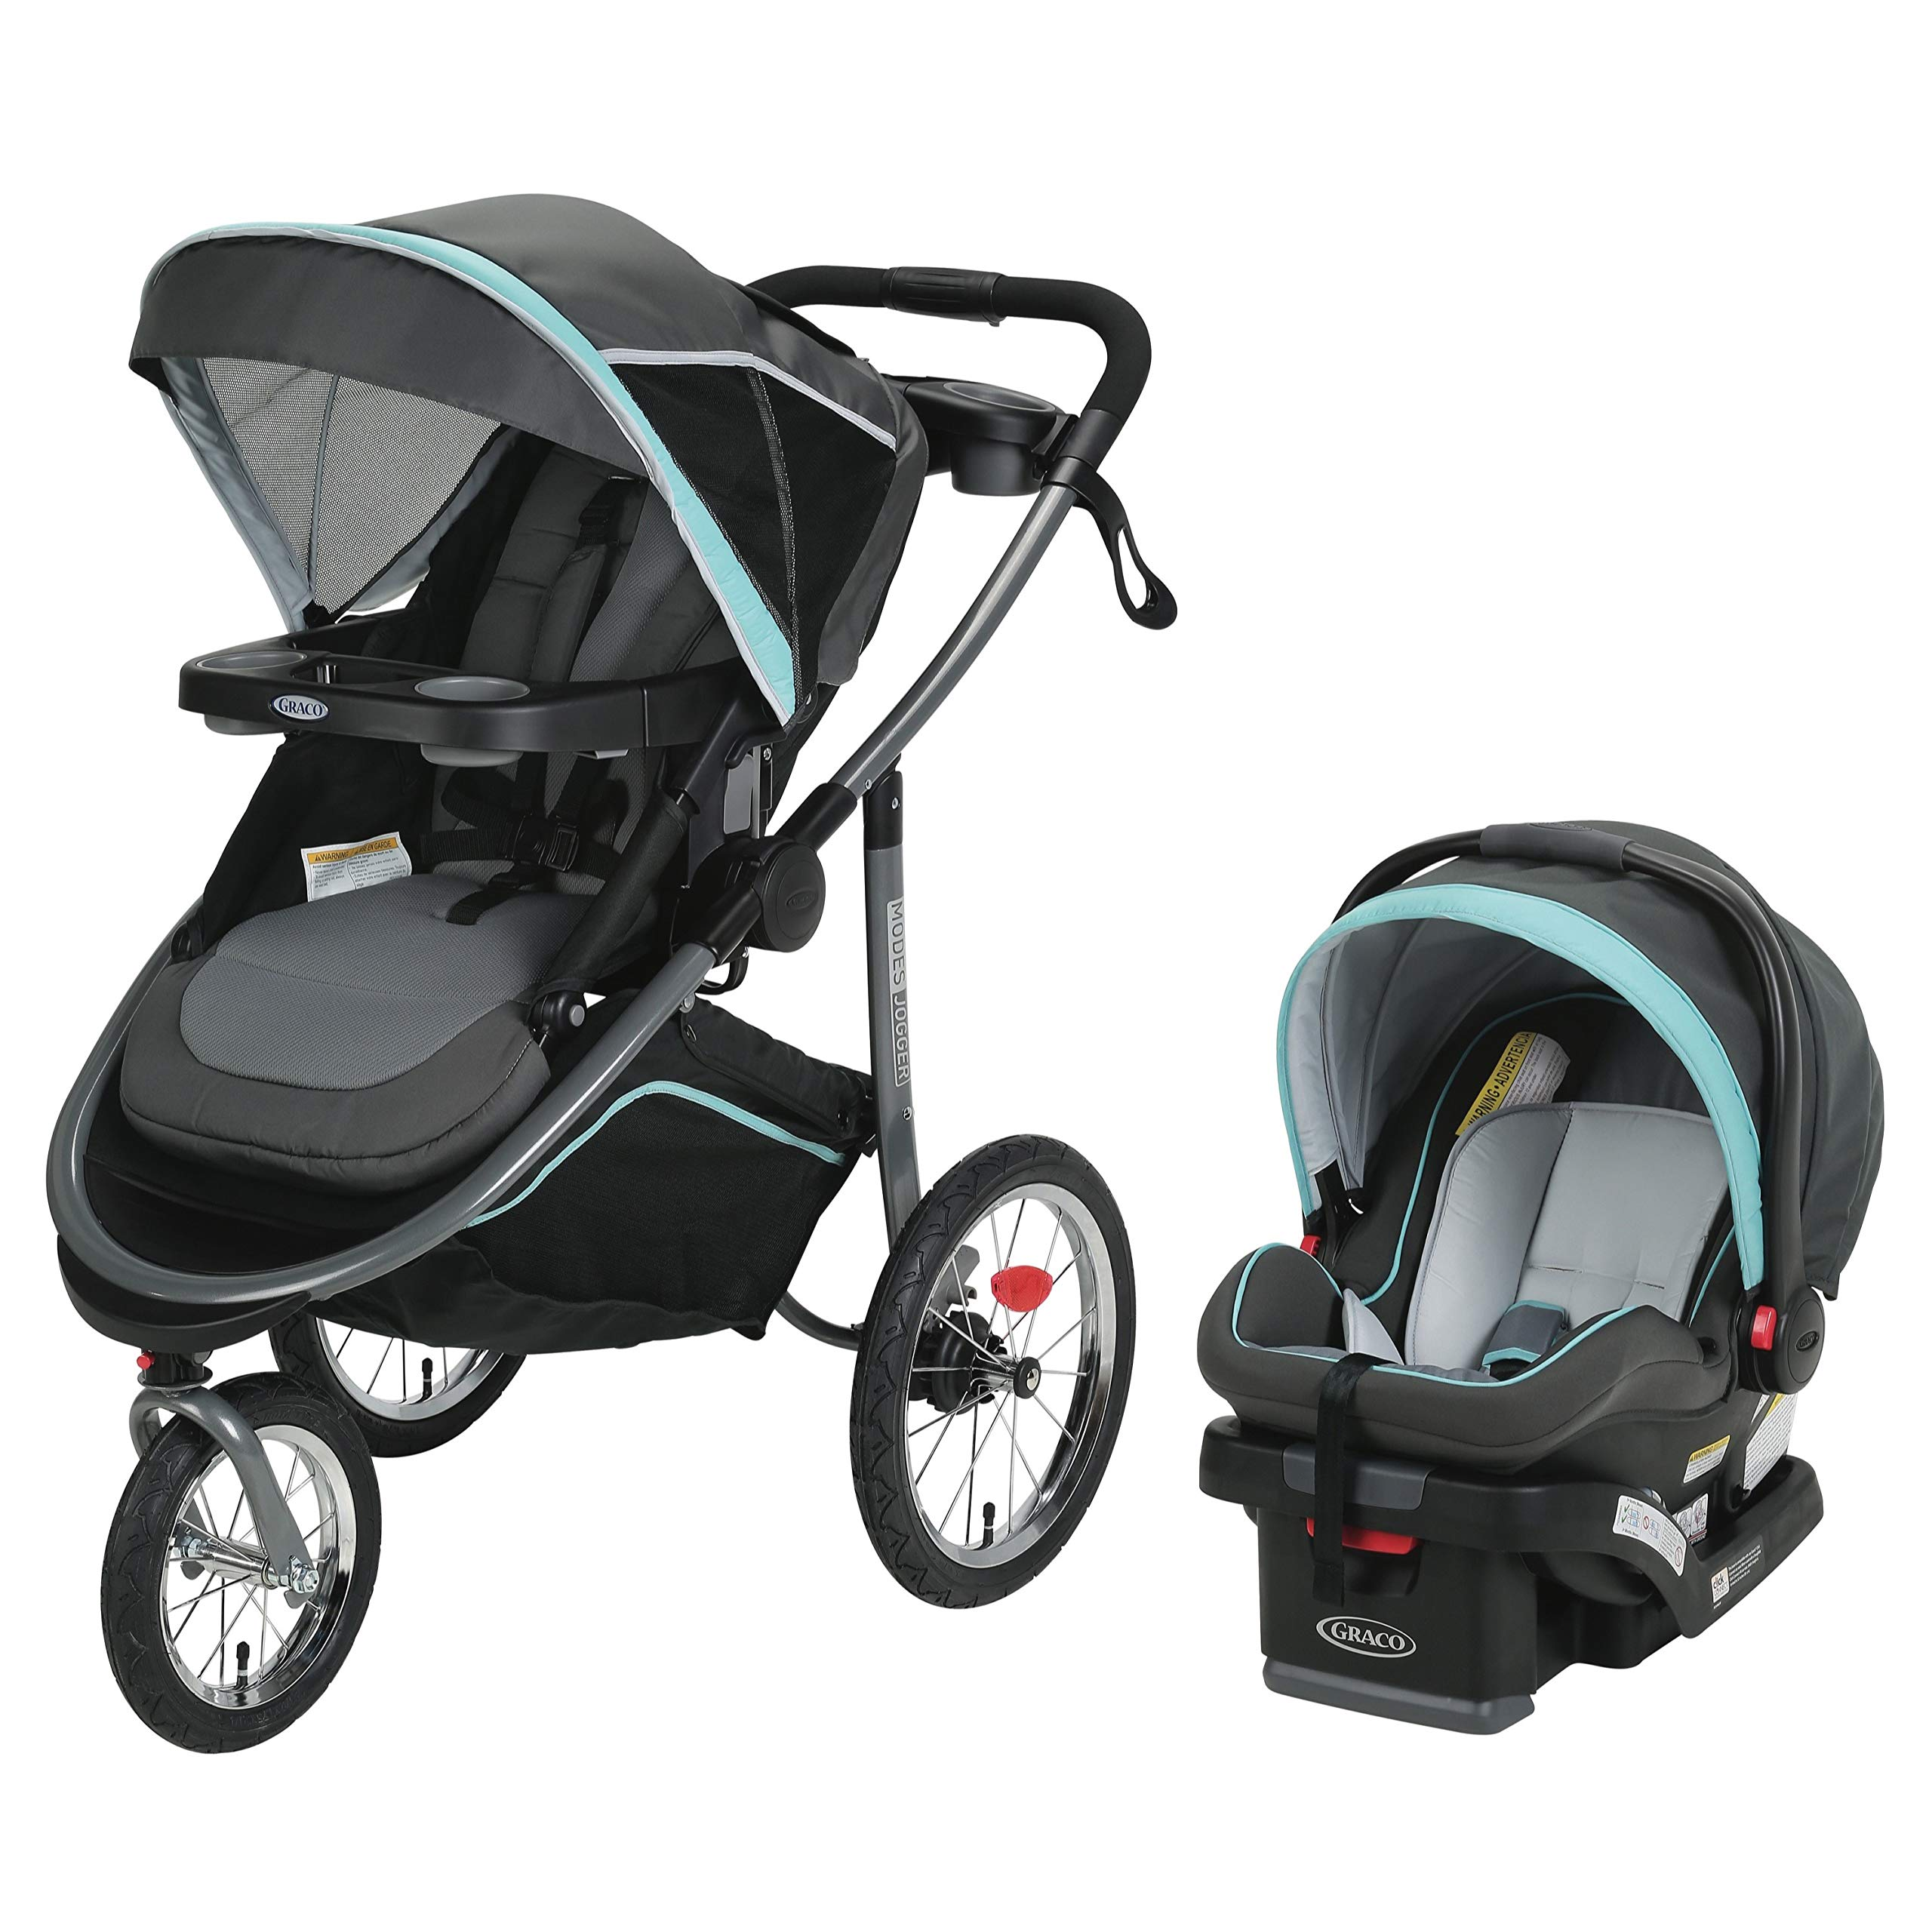 Graco Modes Jogger Travel System | Includes Modes Jogging Stroller and SnugRide SnugLock 35 LX Infant Car Seat, Tenley by Graco